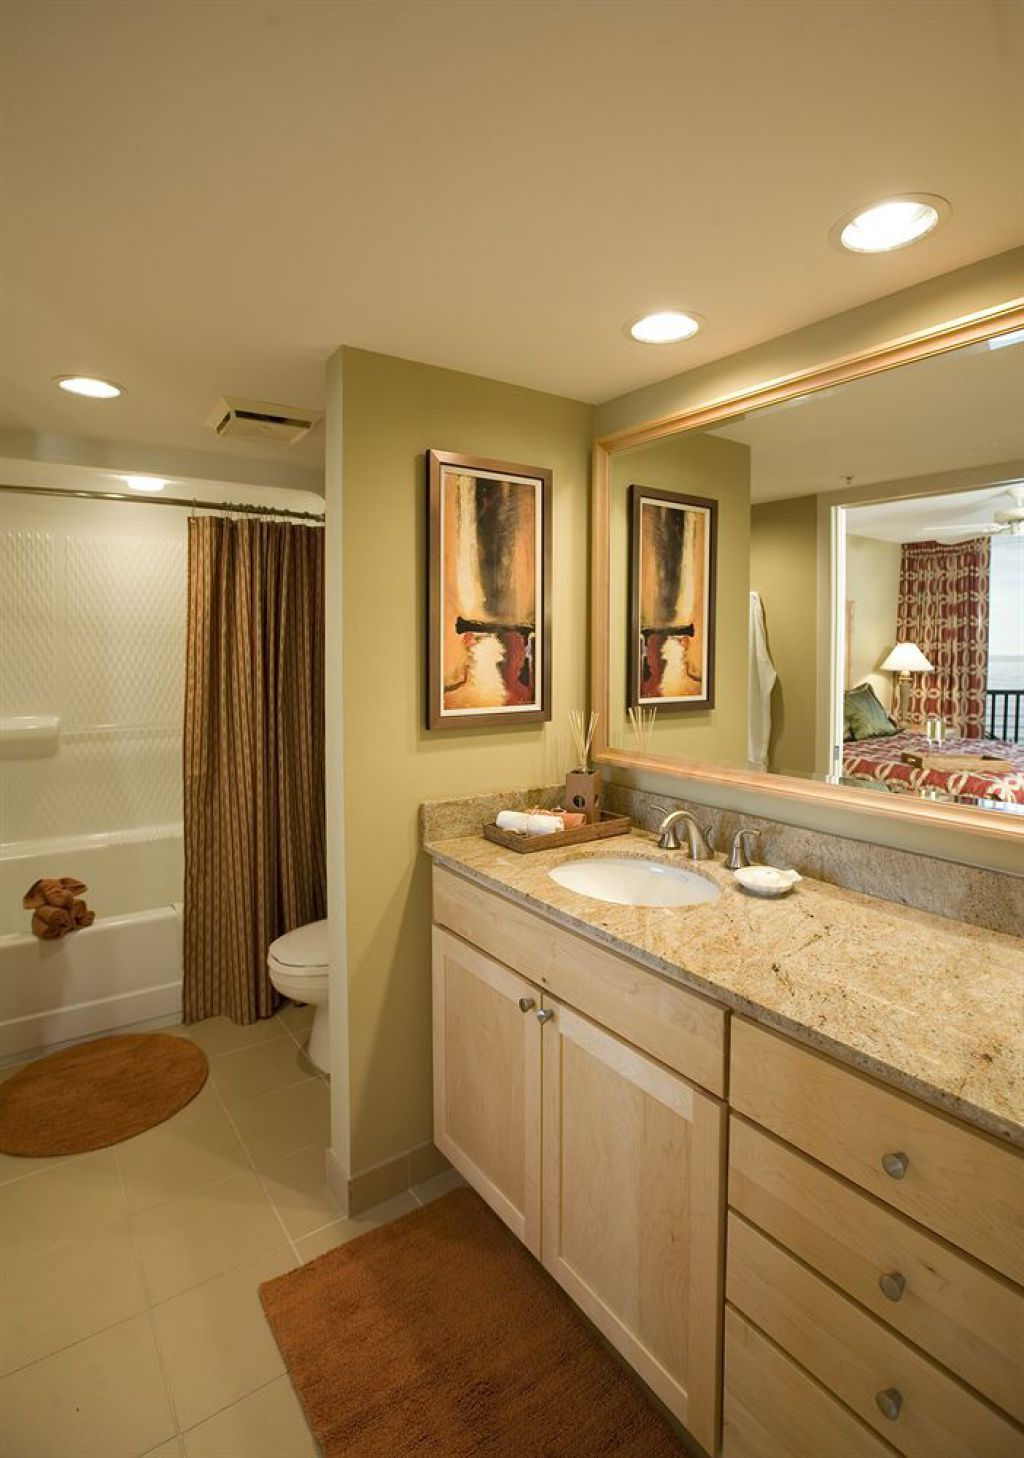 Improve Lighting In Your Home With Recessed Lighting Bathroom